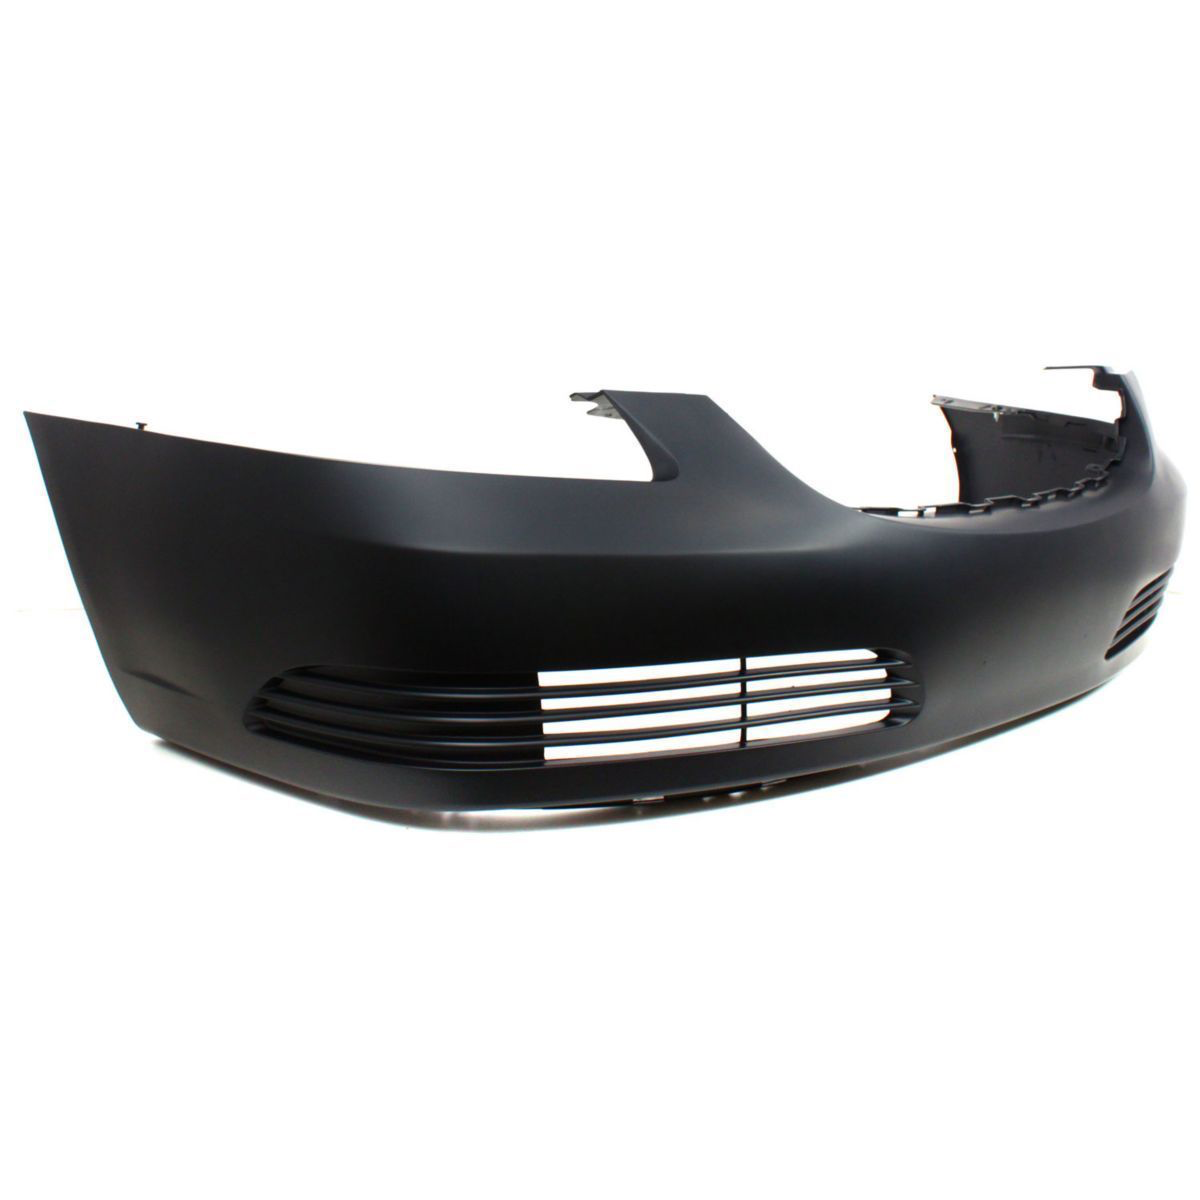 2006-2011 BUICK LUCERNE Front Bumper Cover CXL Painted to Match